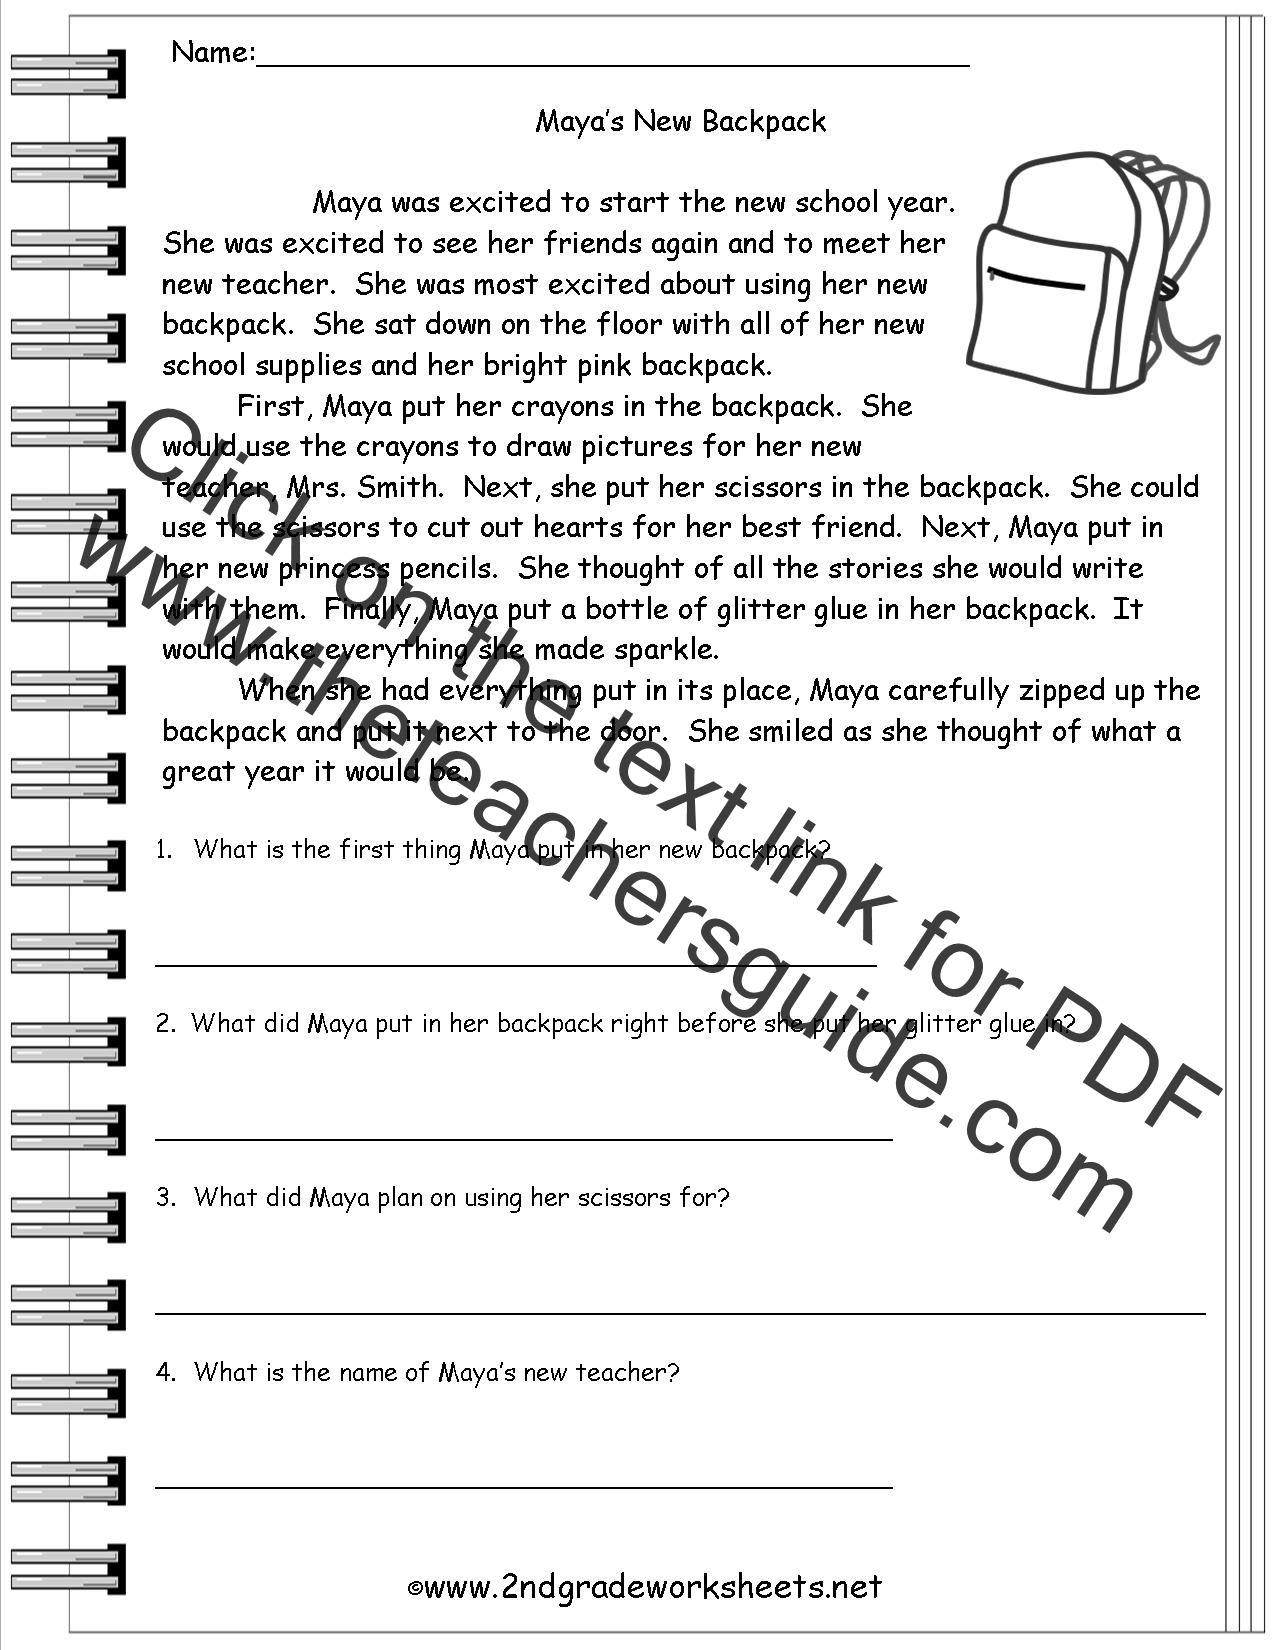 Reading Worksheeets – Reading Comprehension Worksheets 3rd Grade